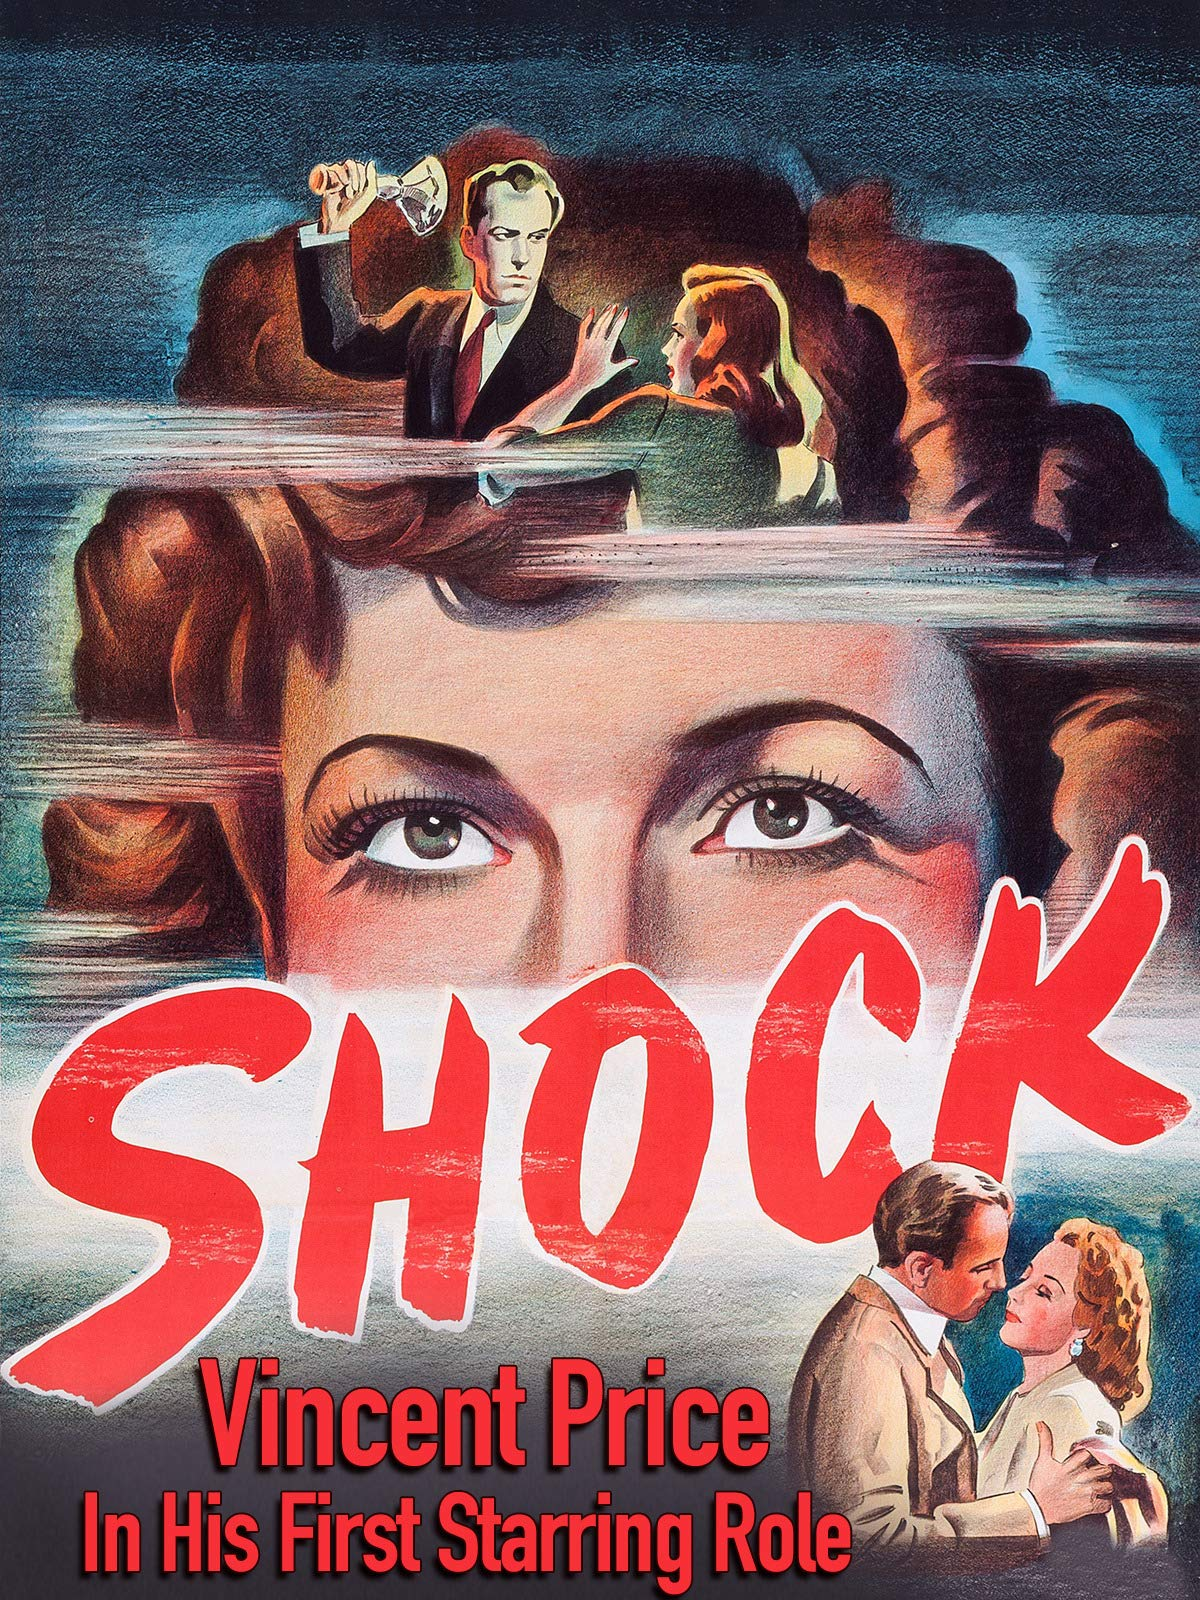 Shock - Vincent Price, In His First Starring Role on Amazon Prime Instant Video UK